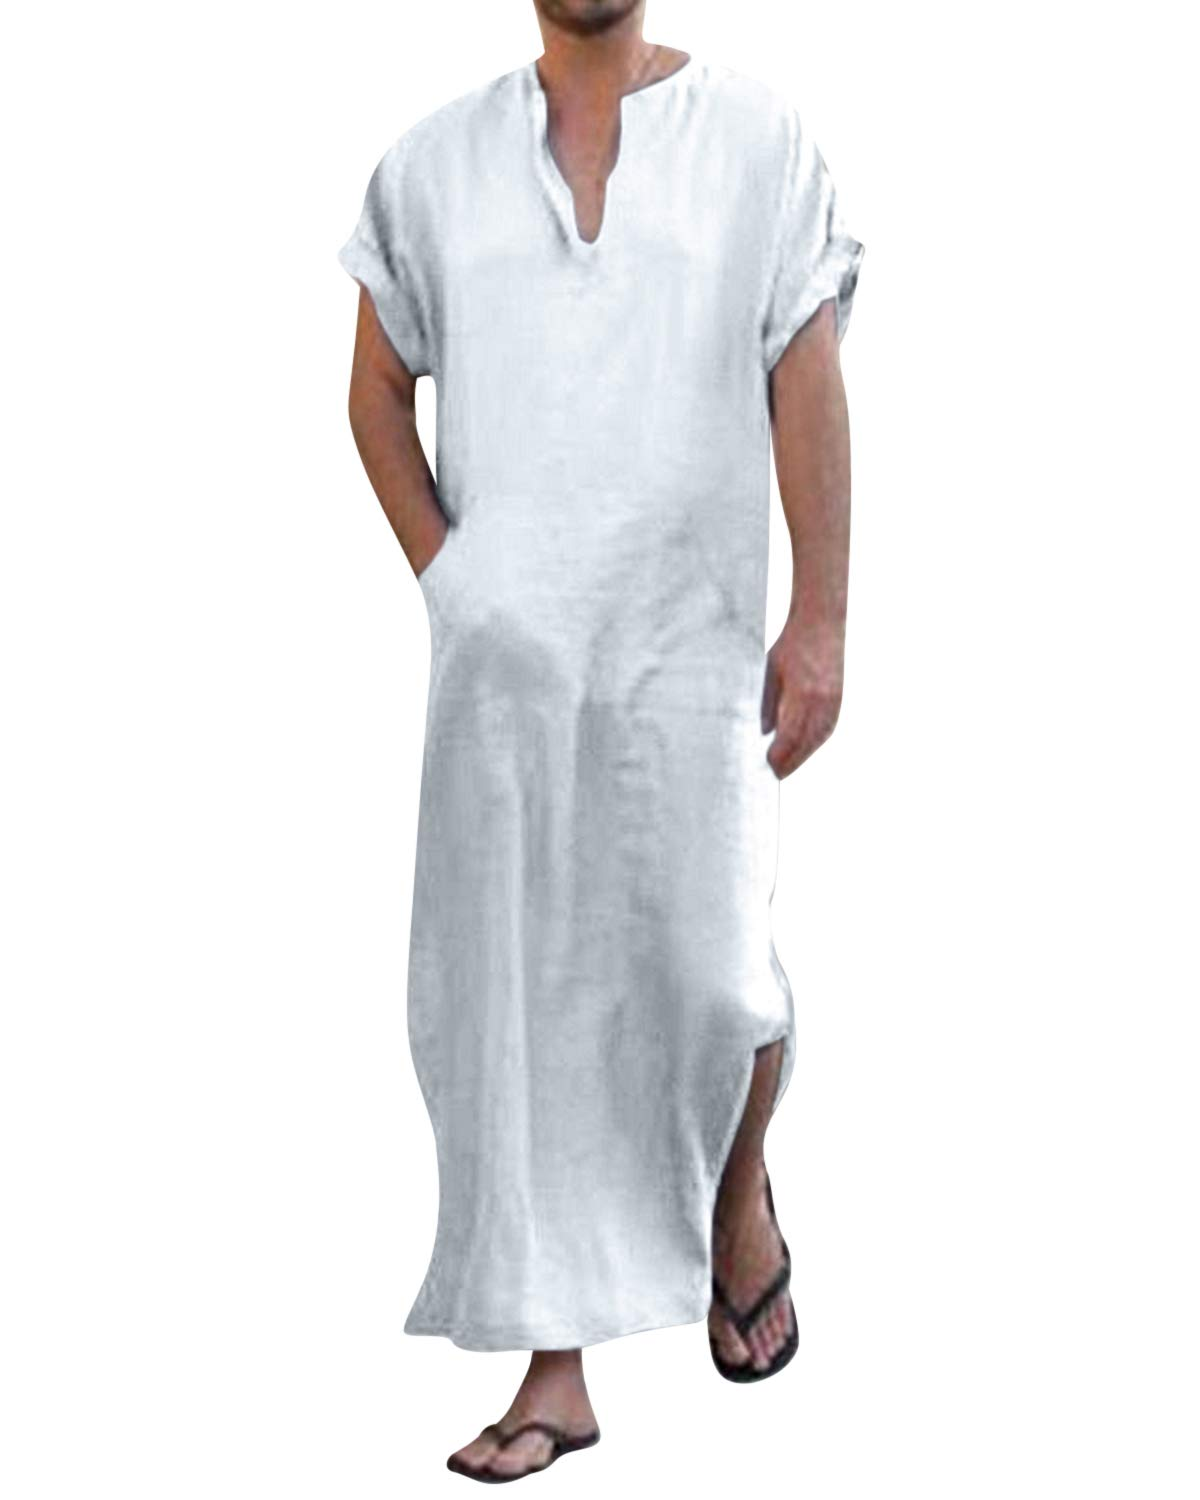 Jacansi Men's Casual Katan Ethnic Robes Side Split East Asian Long Robes with Pockets White M